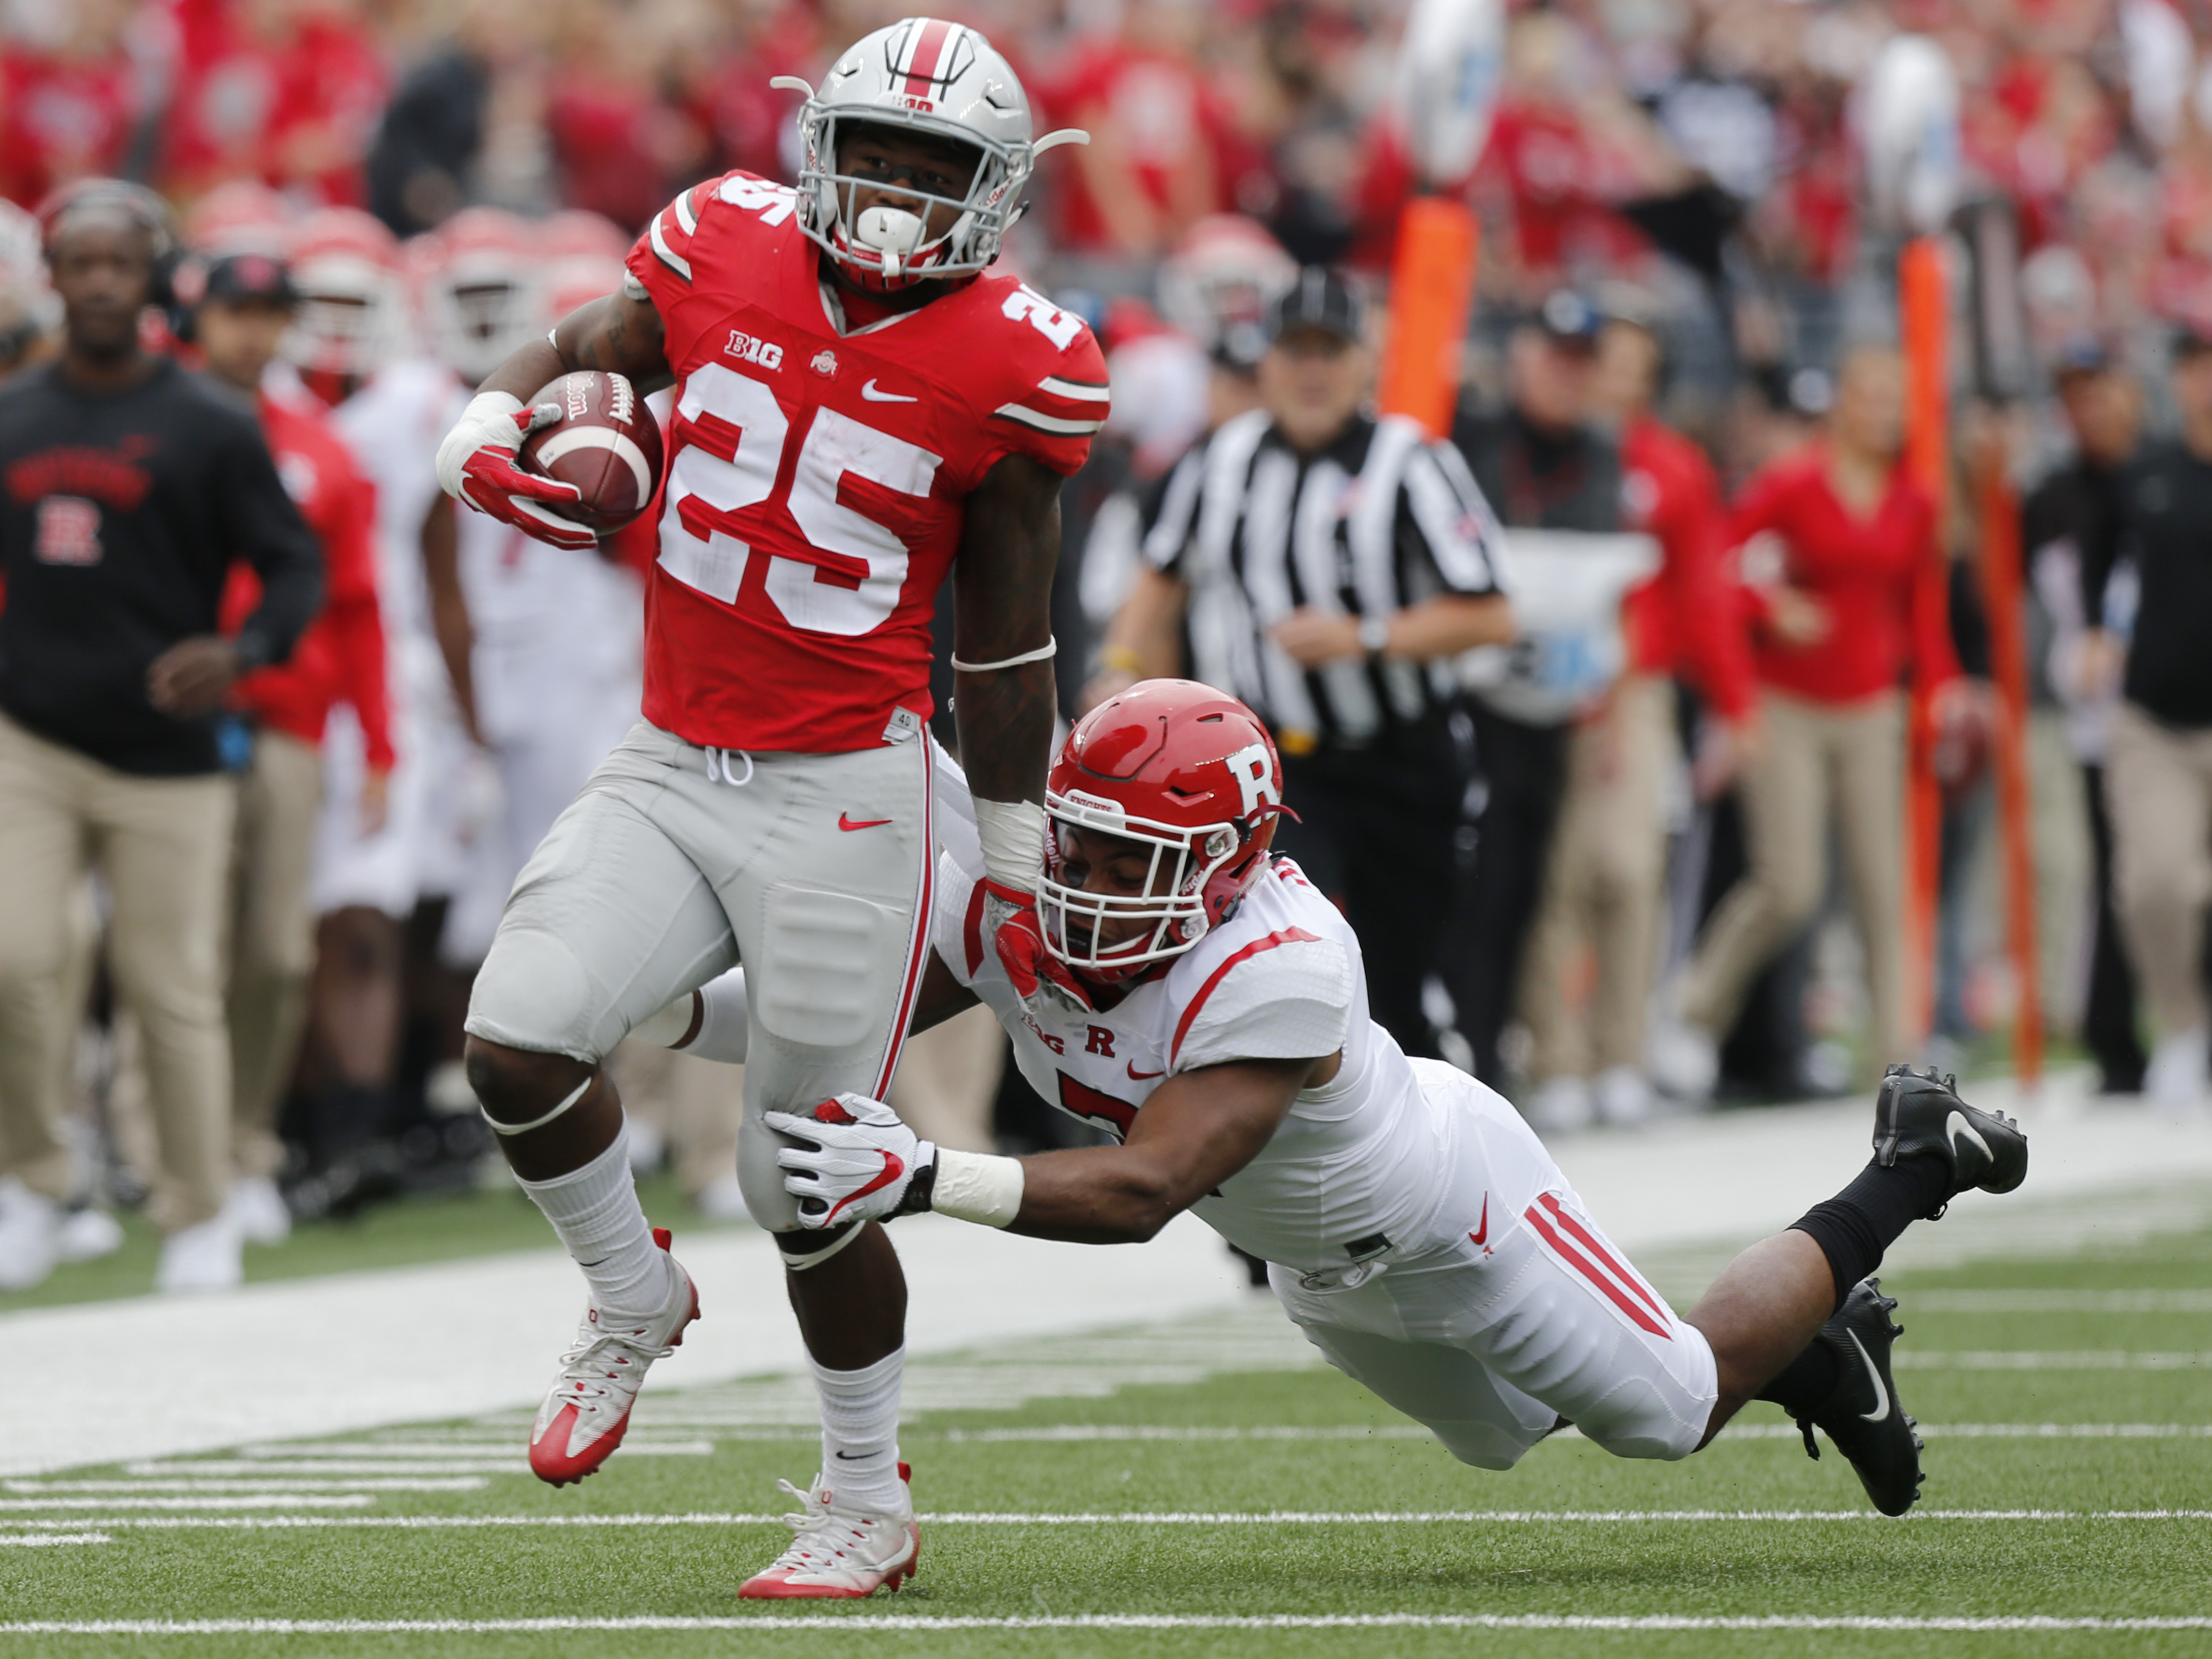 Ohio State running back Mike Weber, left, is forced out-of-bounds by Rutgers defensive back Kiy Hester during the first half of an NCAA college football game Saturday, Oct. 1, 2016, in Columbus, Ohio. (AP Photo/Jay LaPrete)